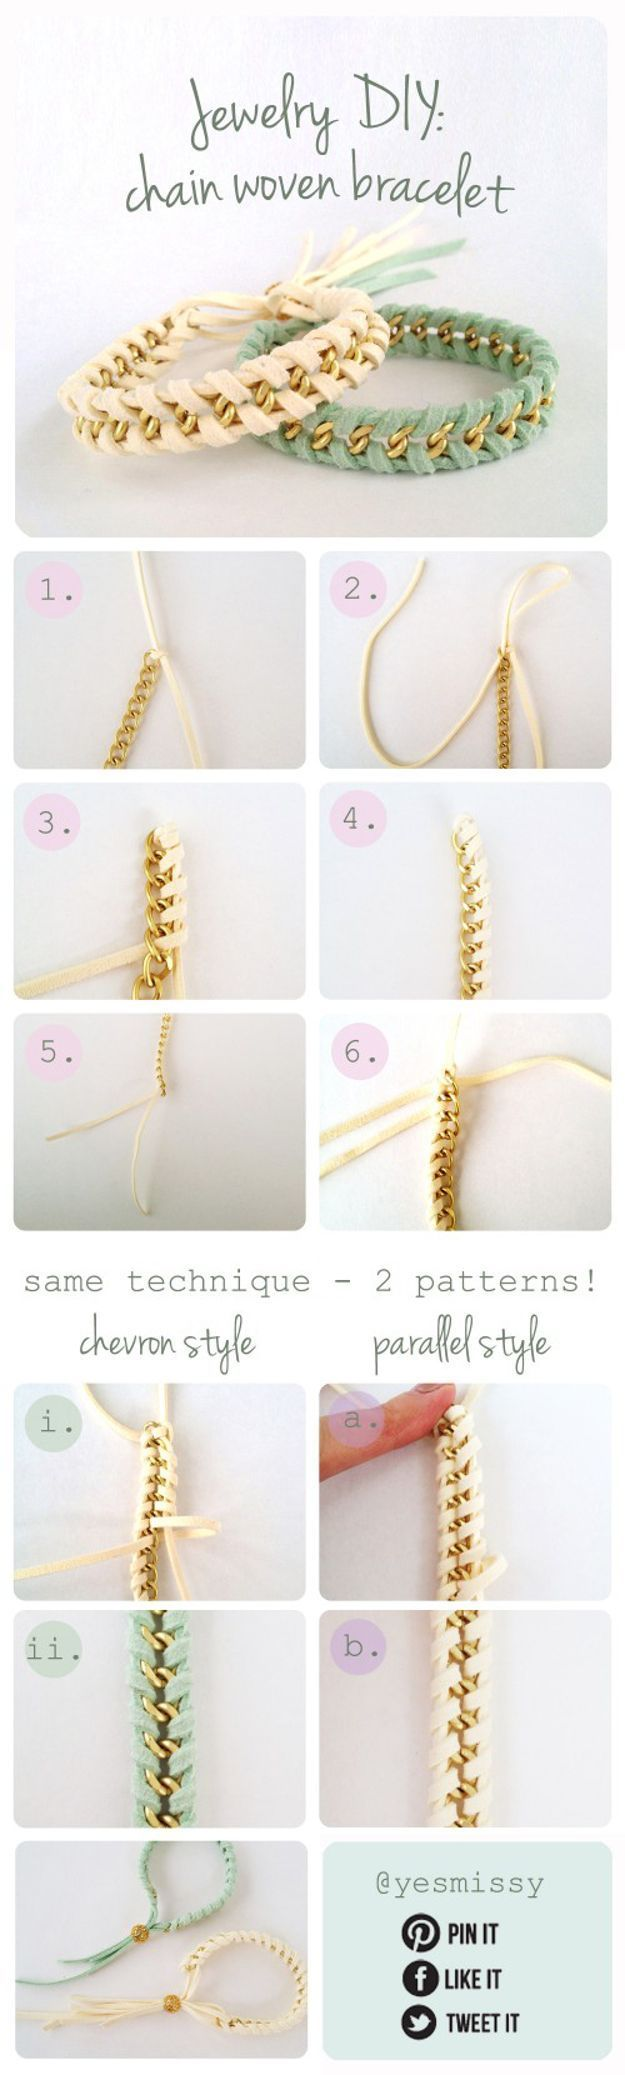 Tendance Bracelets  Cool DIY Bracelets  Easy Jewelry Making Tutorials! How To Make A Braided Chain